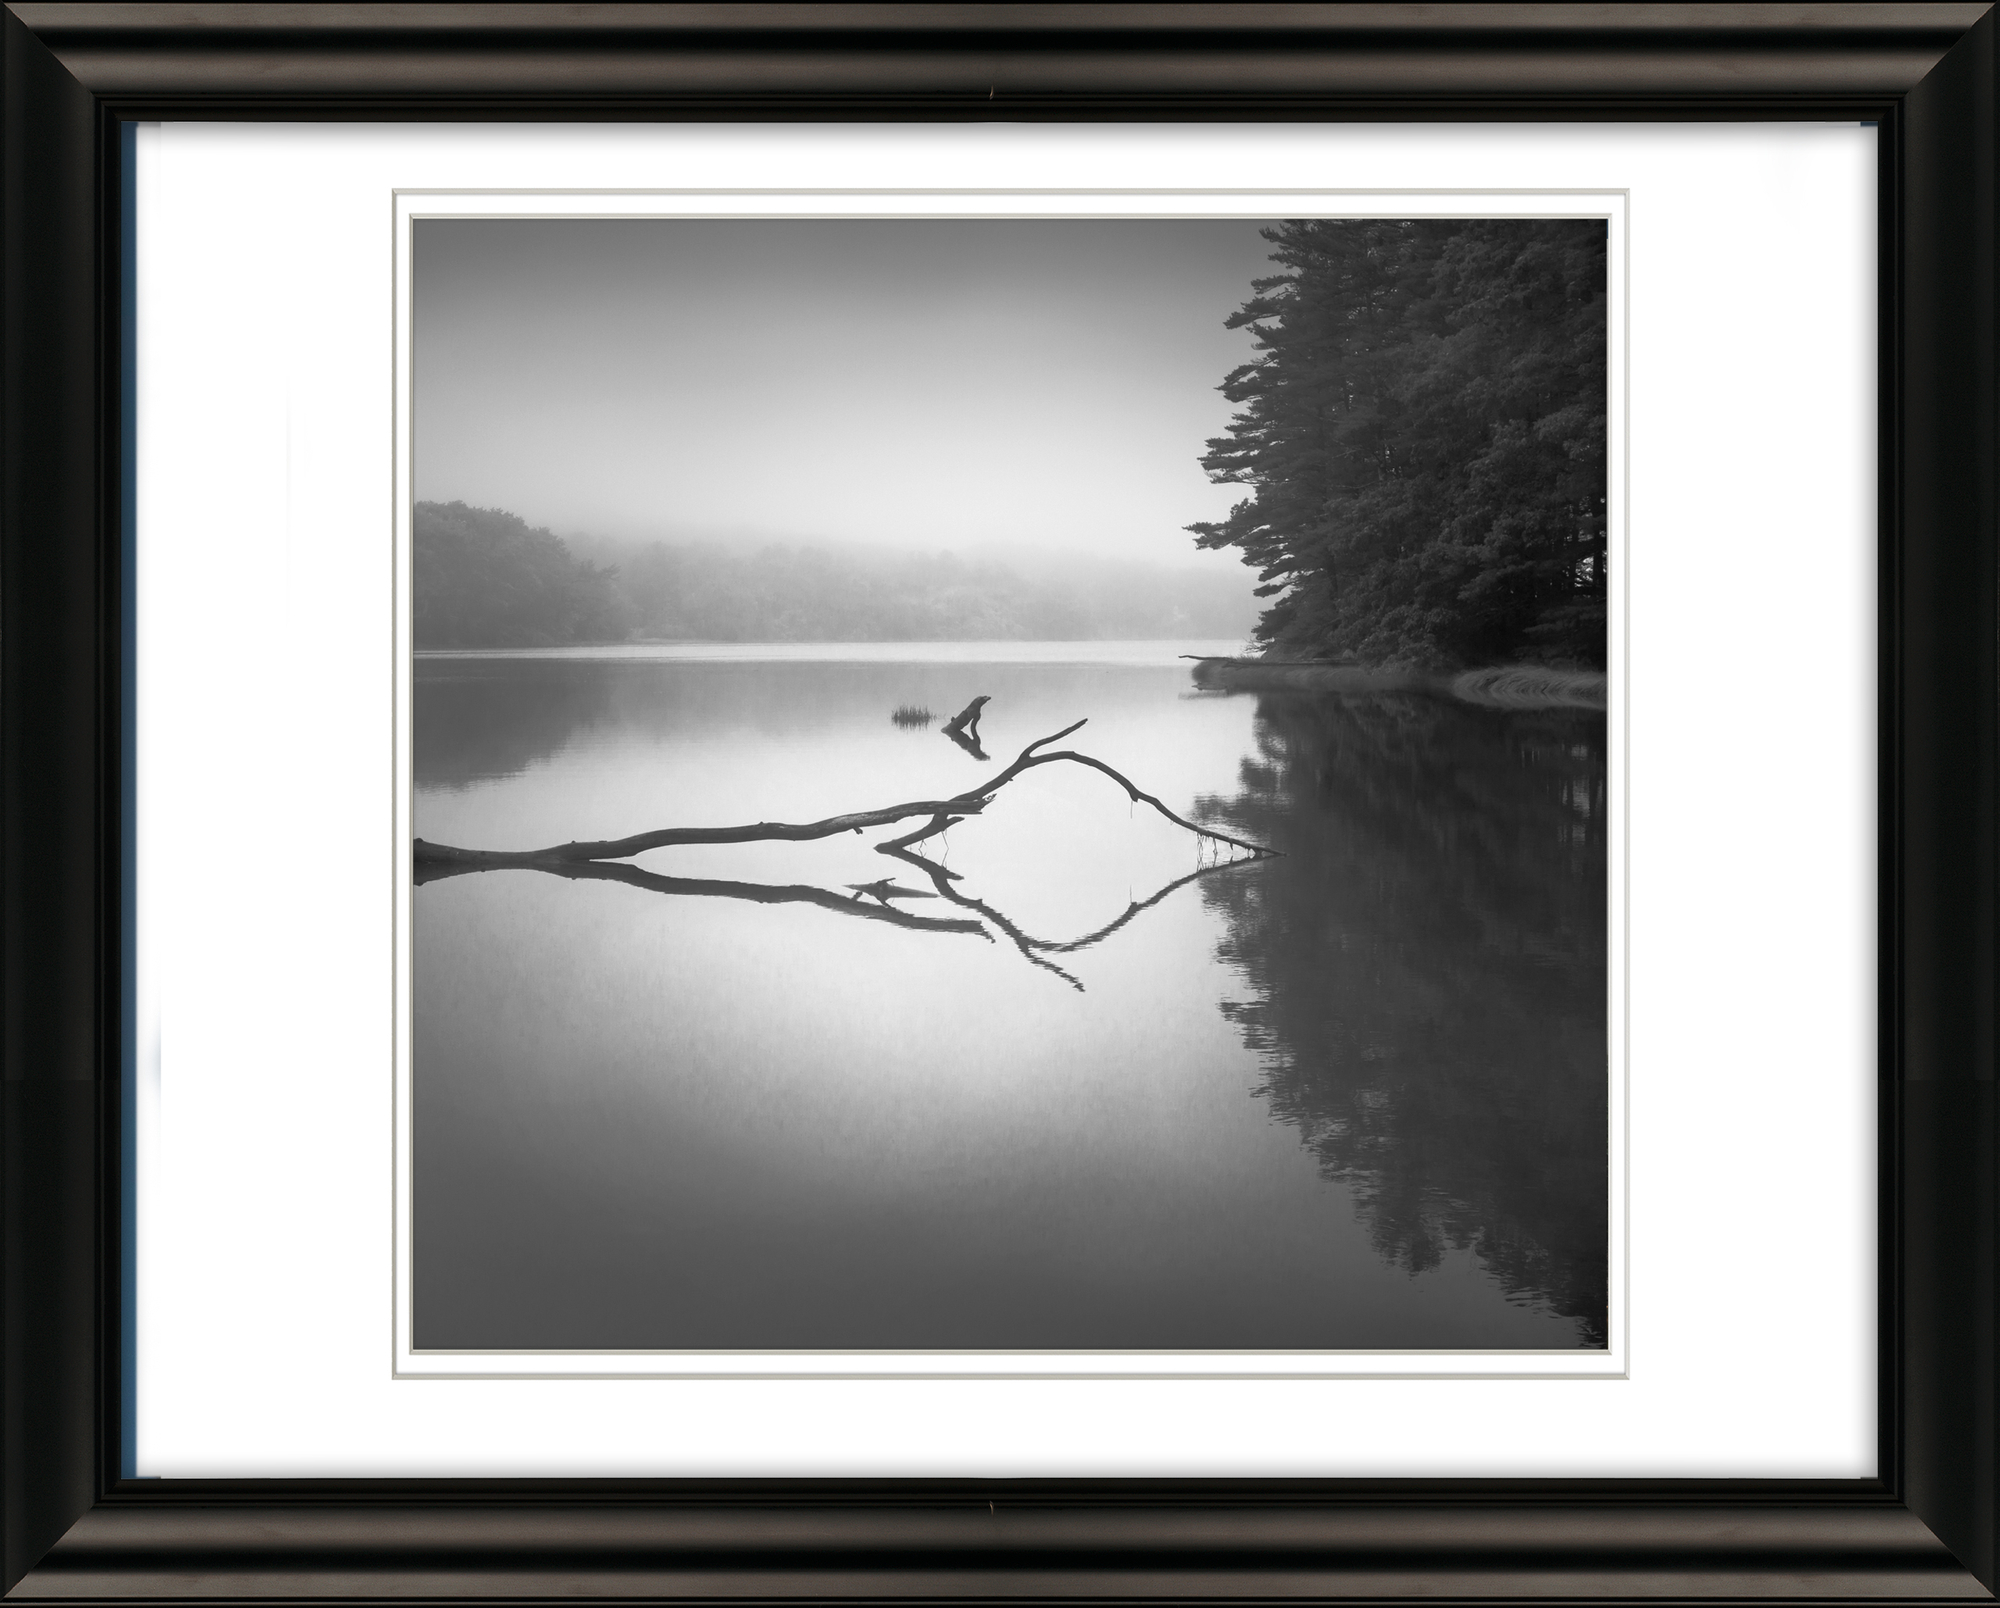 Reflection of Wood in Lake with Fog, Maine